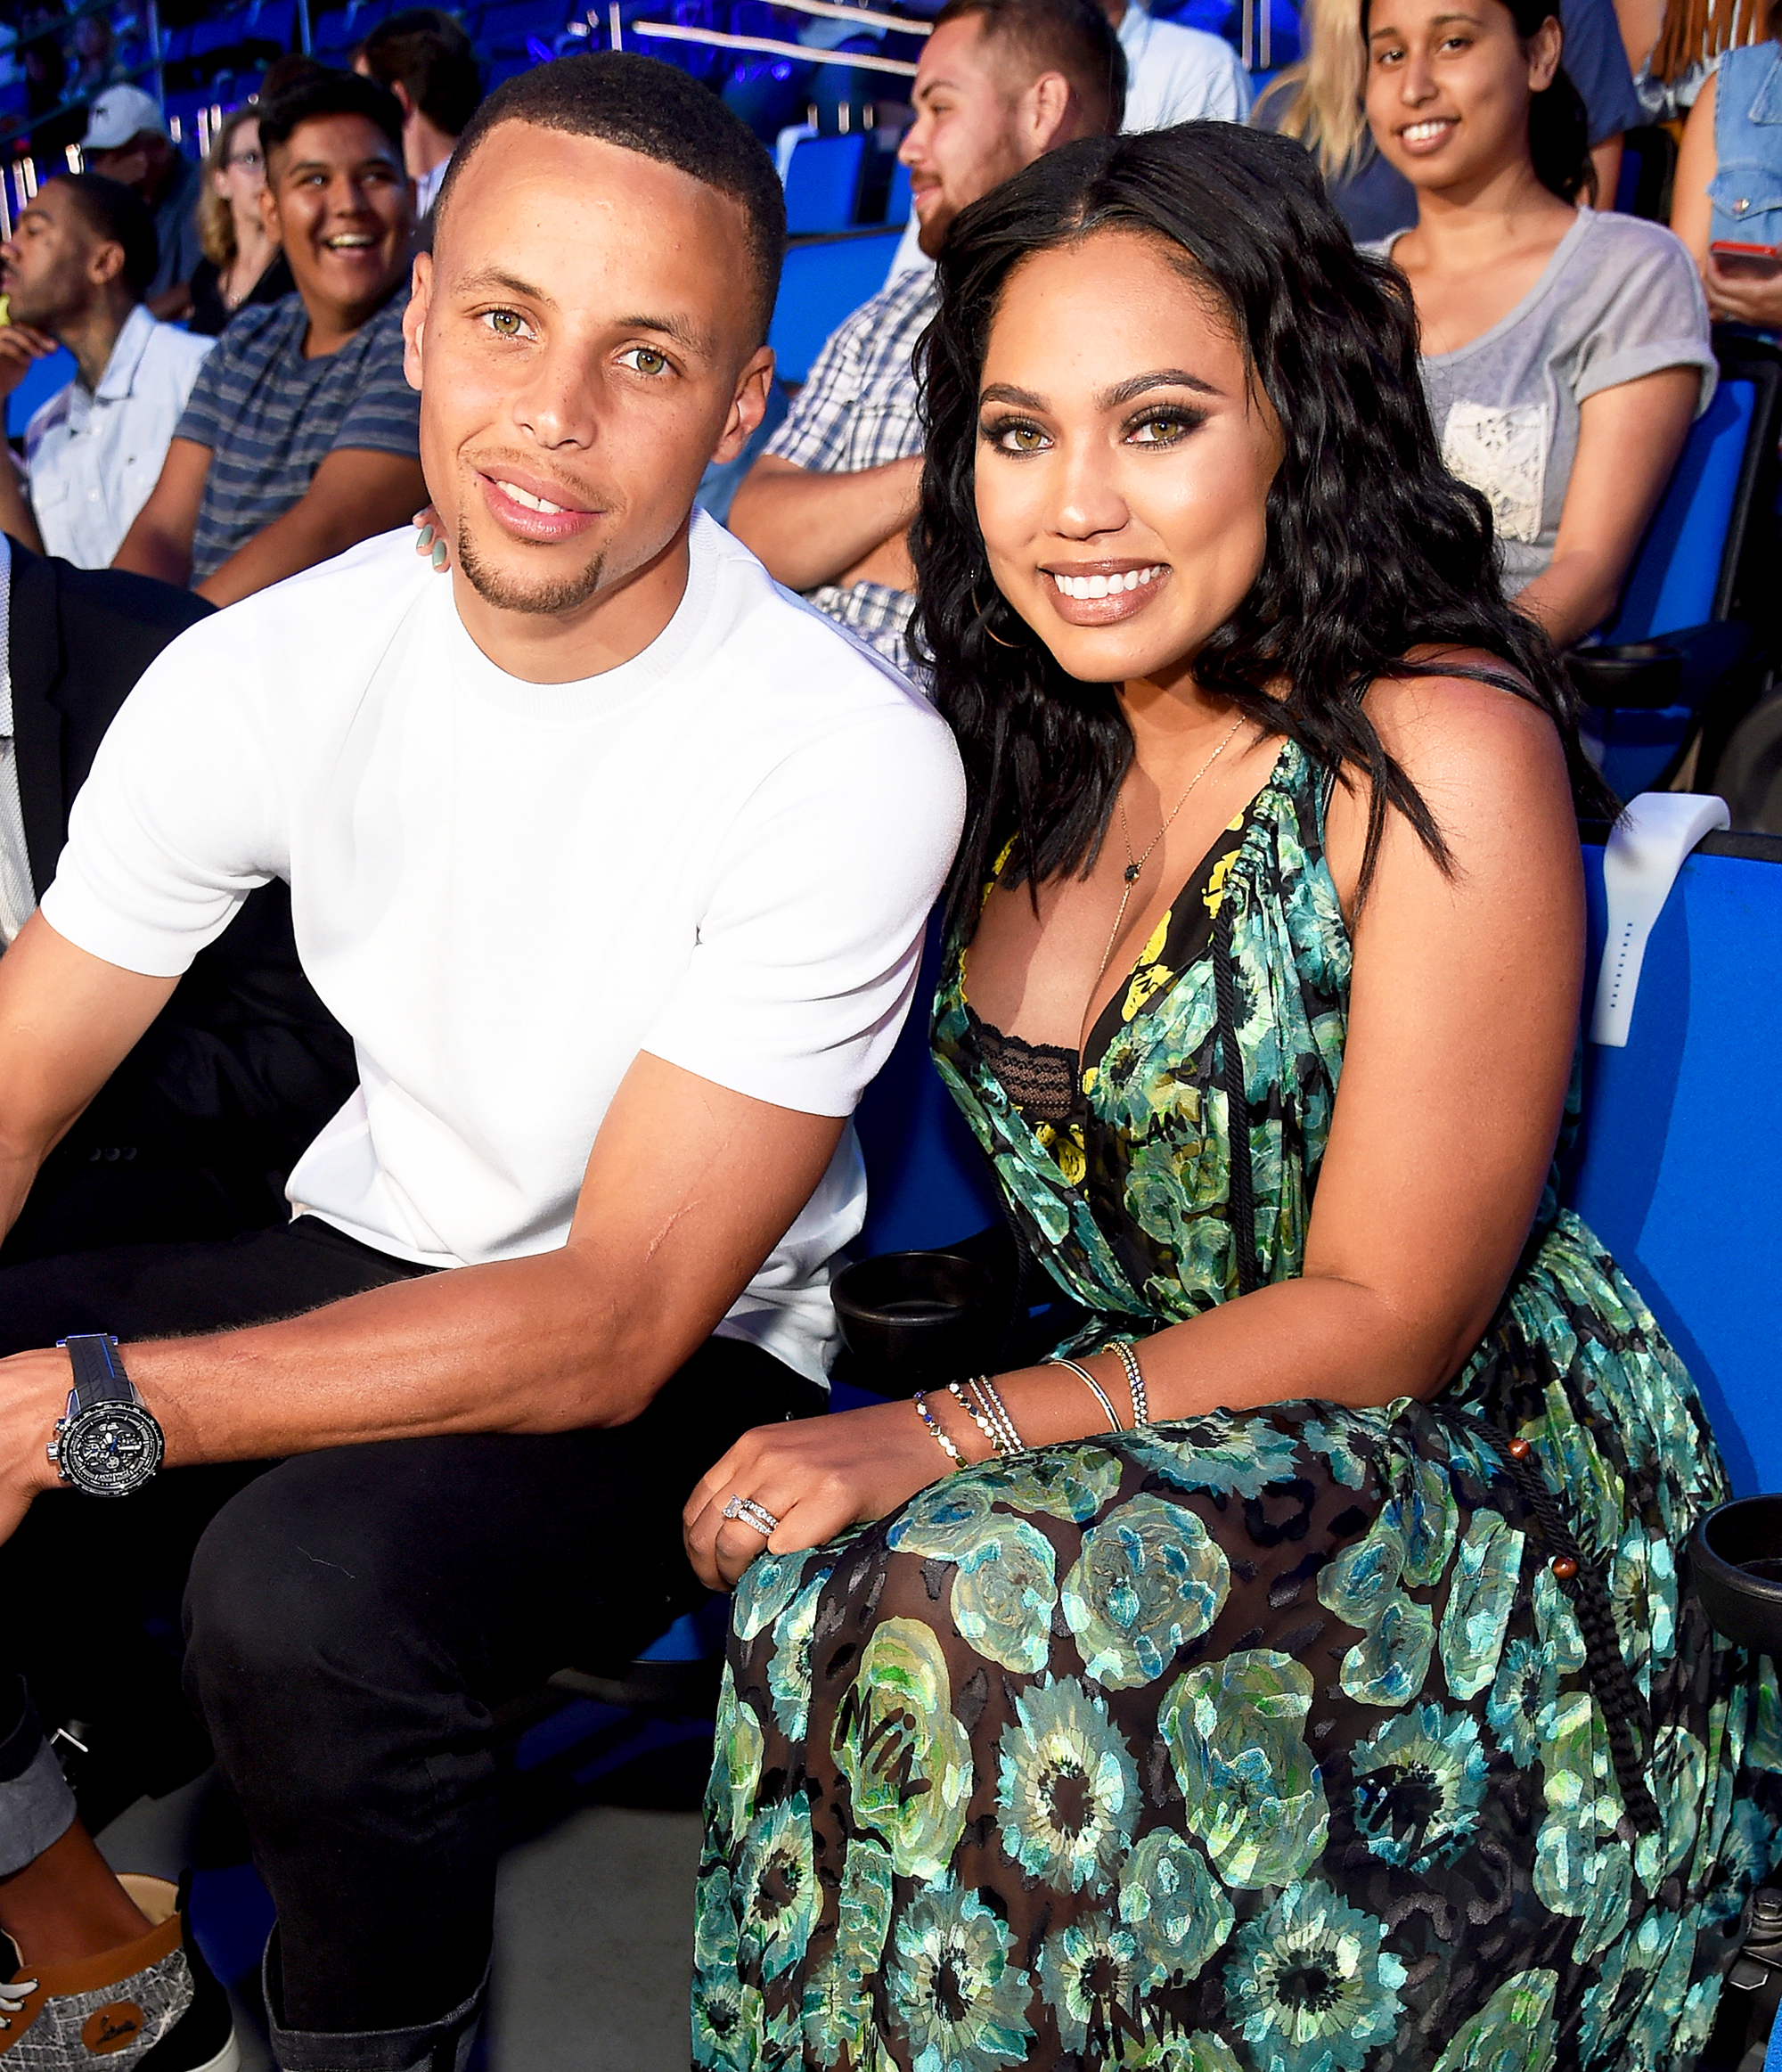 Ayesha Curry Gushes Over Shirtless Husband Stephen Curry